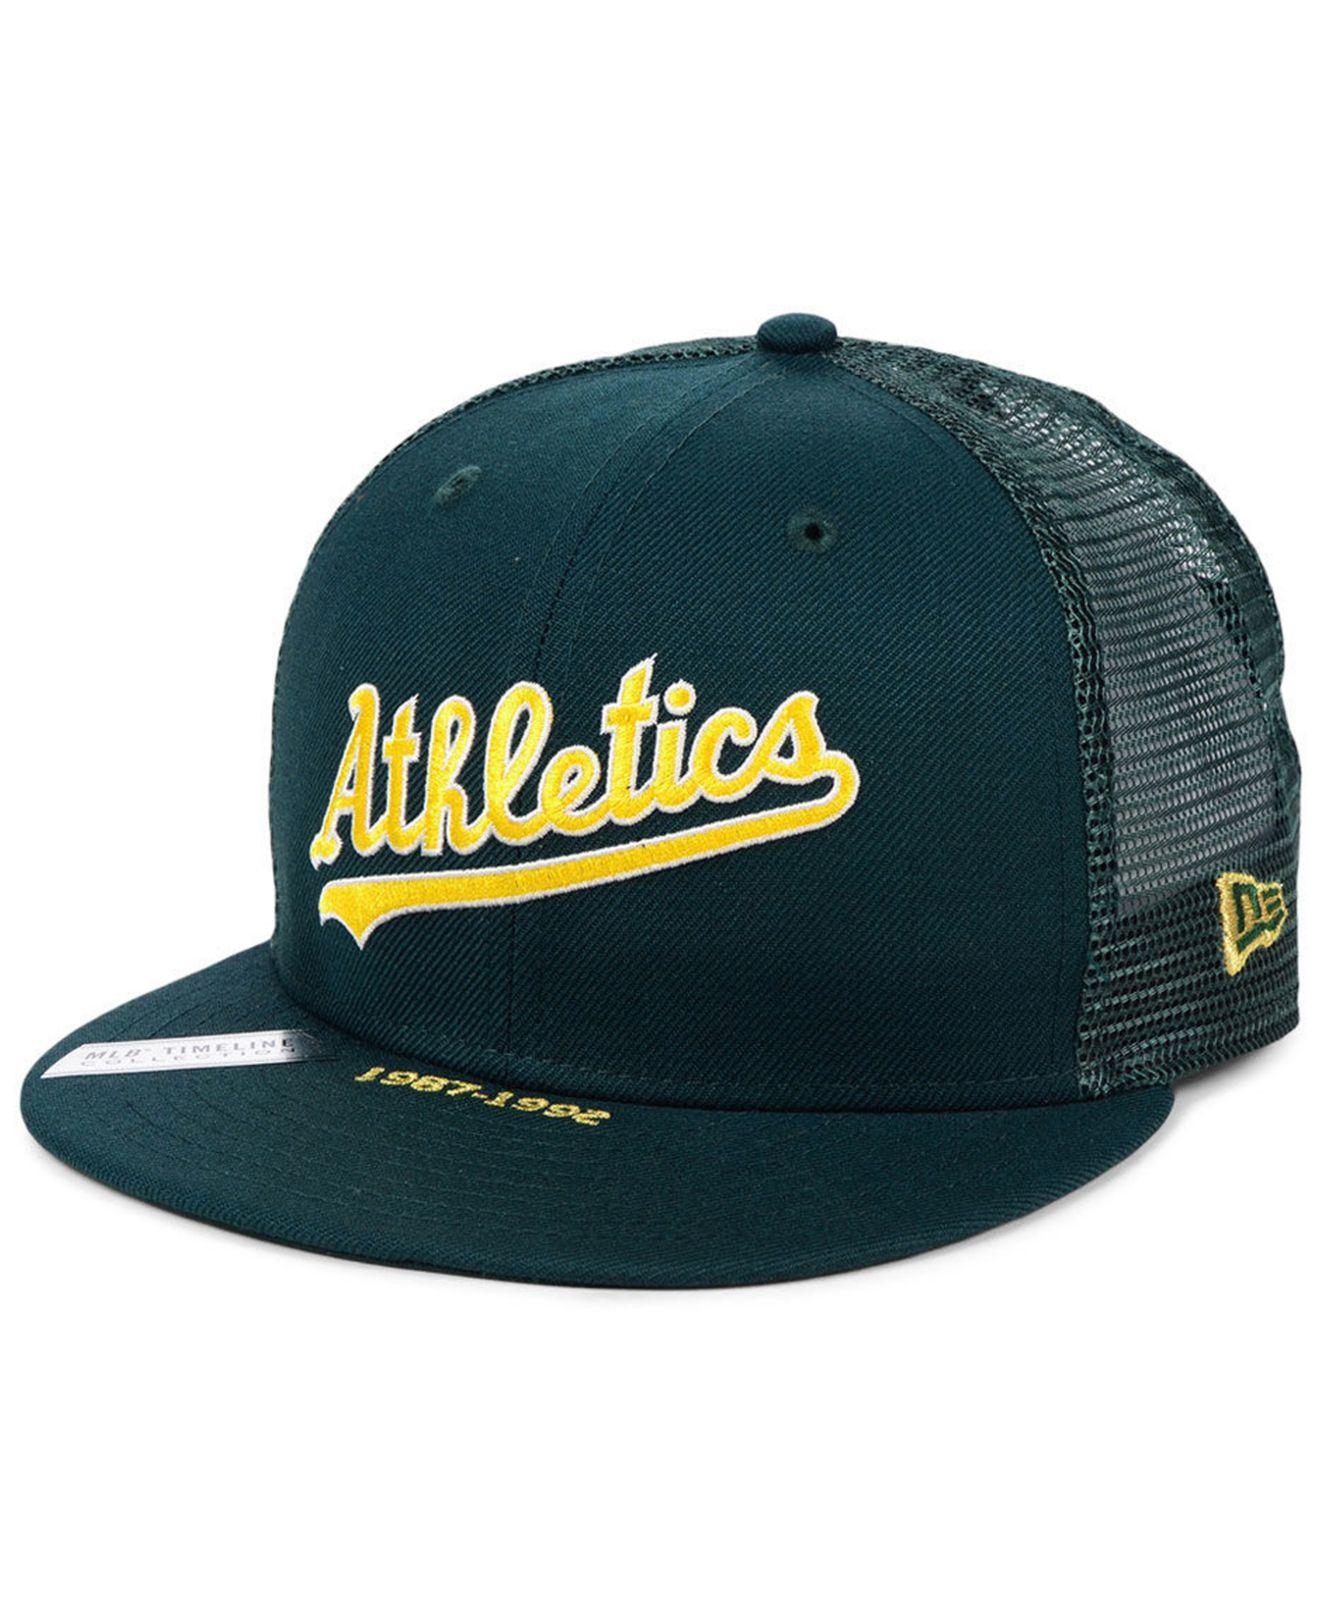 timeless design e0cae ea8be KTZ. Men s Green Oakland Athletics Timeline Collection 9fifty Cap